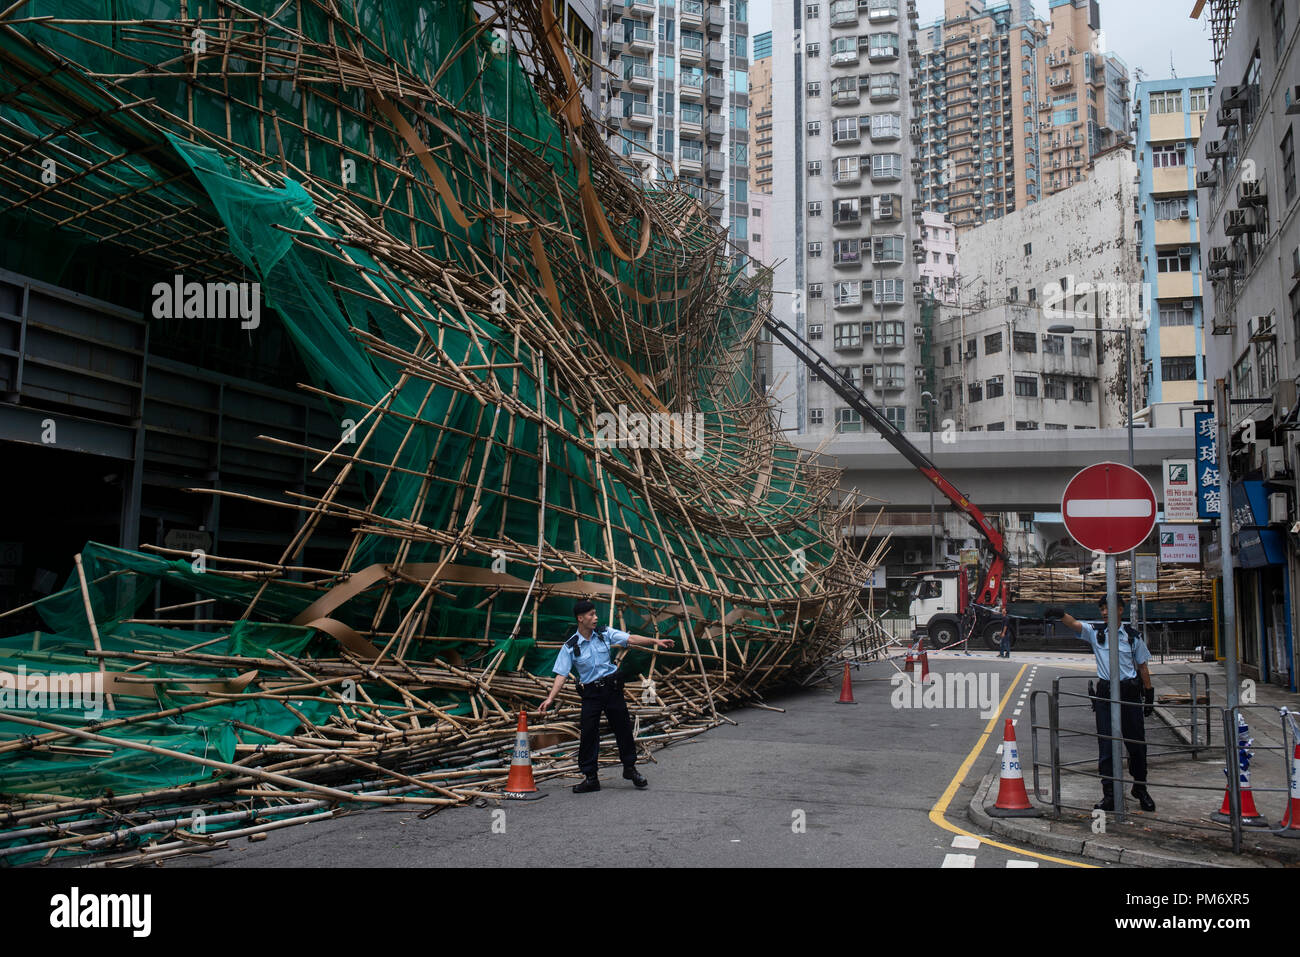 Police officers cut the street after bamboo scaffolding has collapsed and fall into the street. Super Typhoon Mangkhut aftermath is visible in most districts of Hong Kong. The super typhoon Mangkhut has passed next to Hong Kong on the 16th September causing large scale damages around the city, there are 432 people injured due to the storm with 2 still in critical condition. - Stock Image